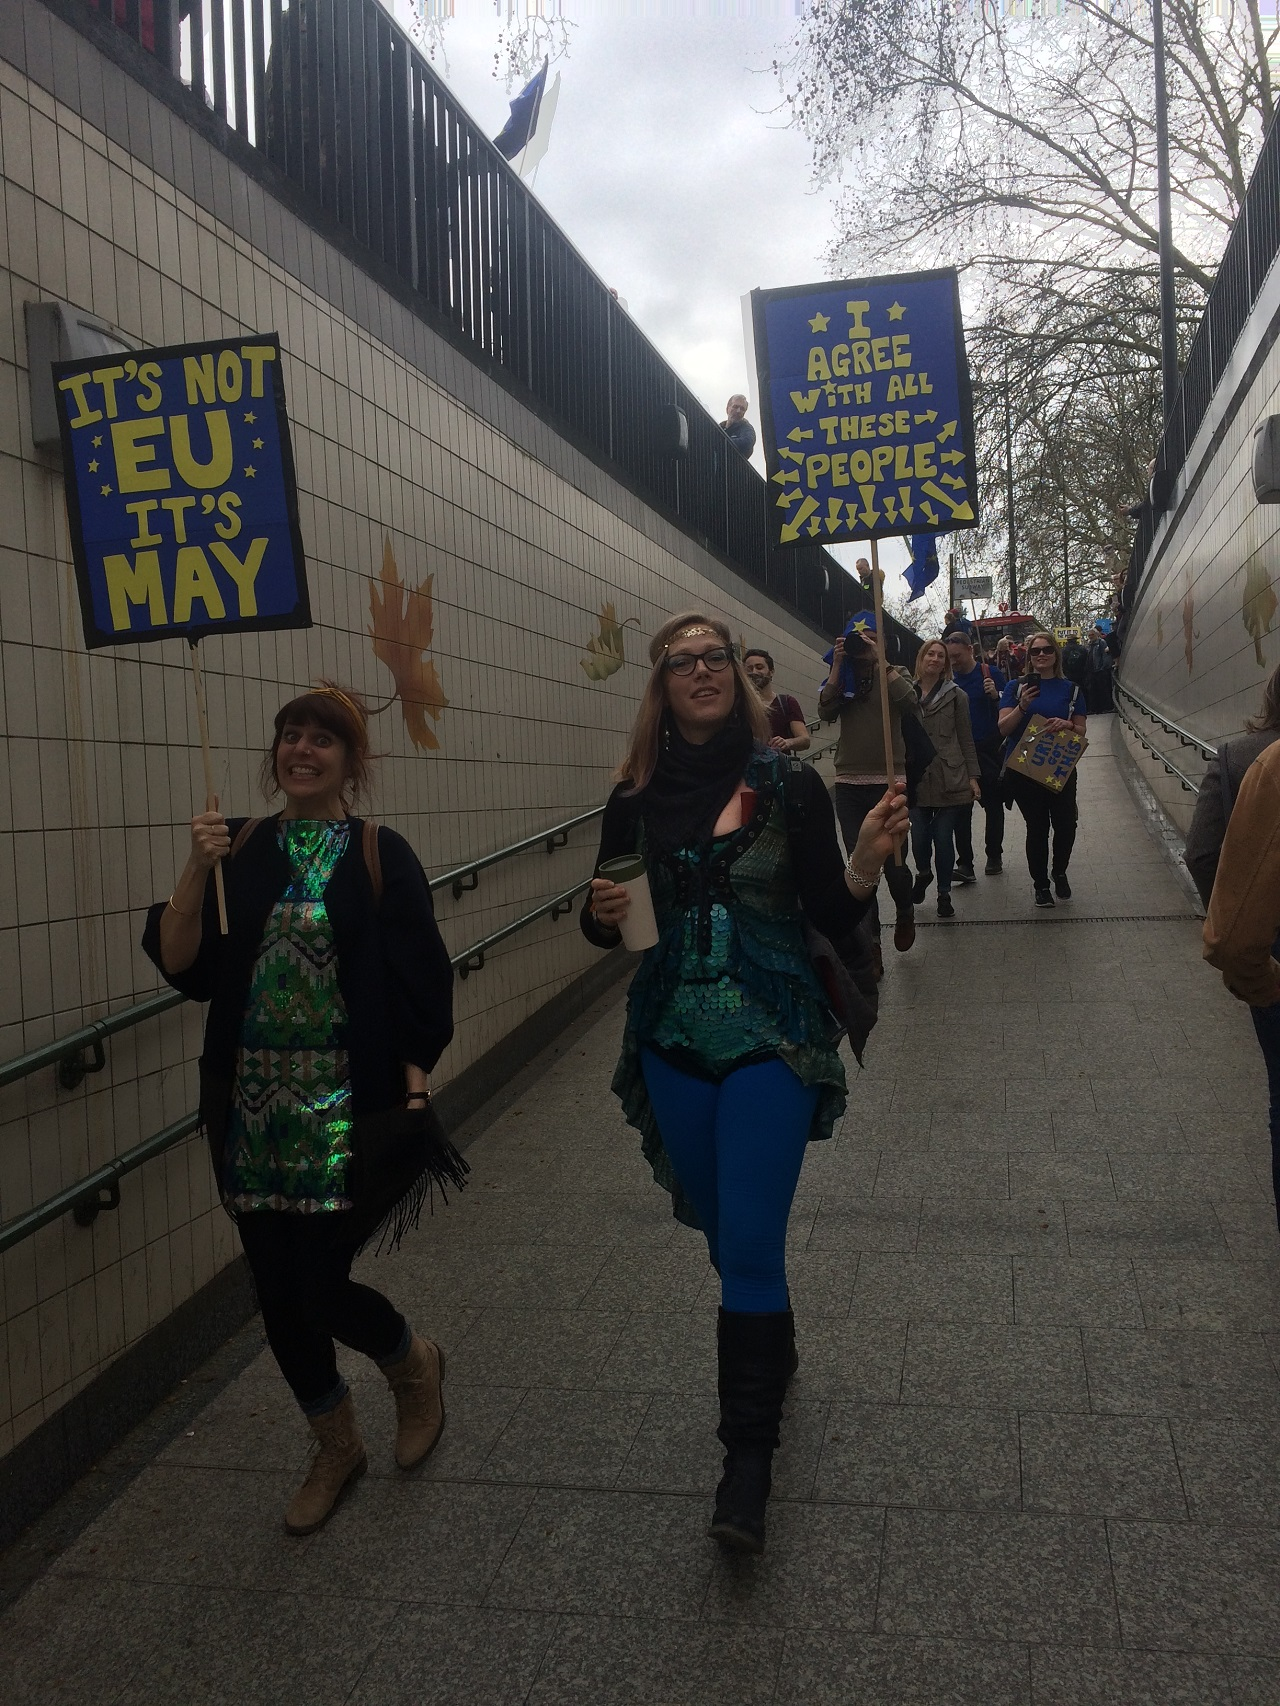 Demonstrant_innen beim Put it to the People March